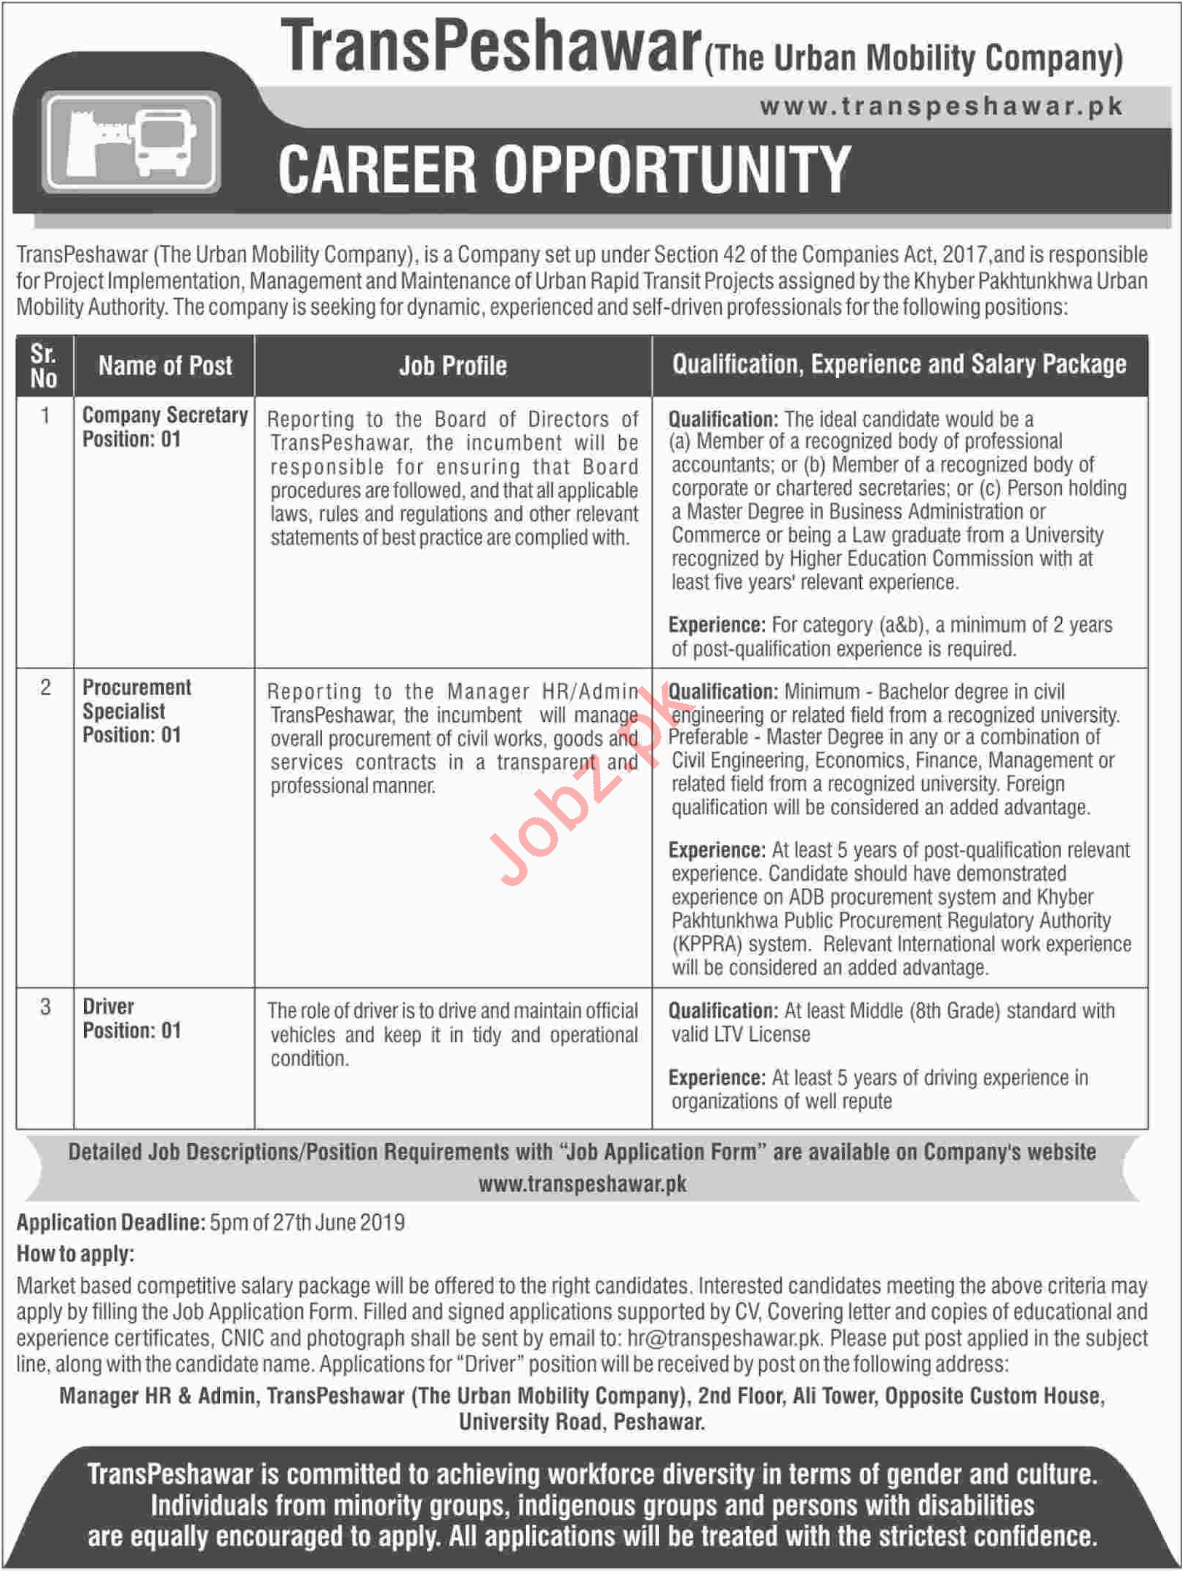 TransPeshawar The Urban Mobility Company Jobs 2019